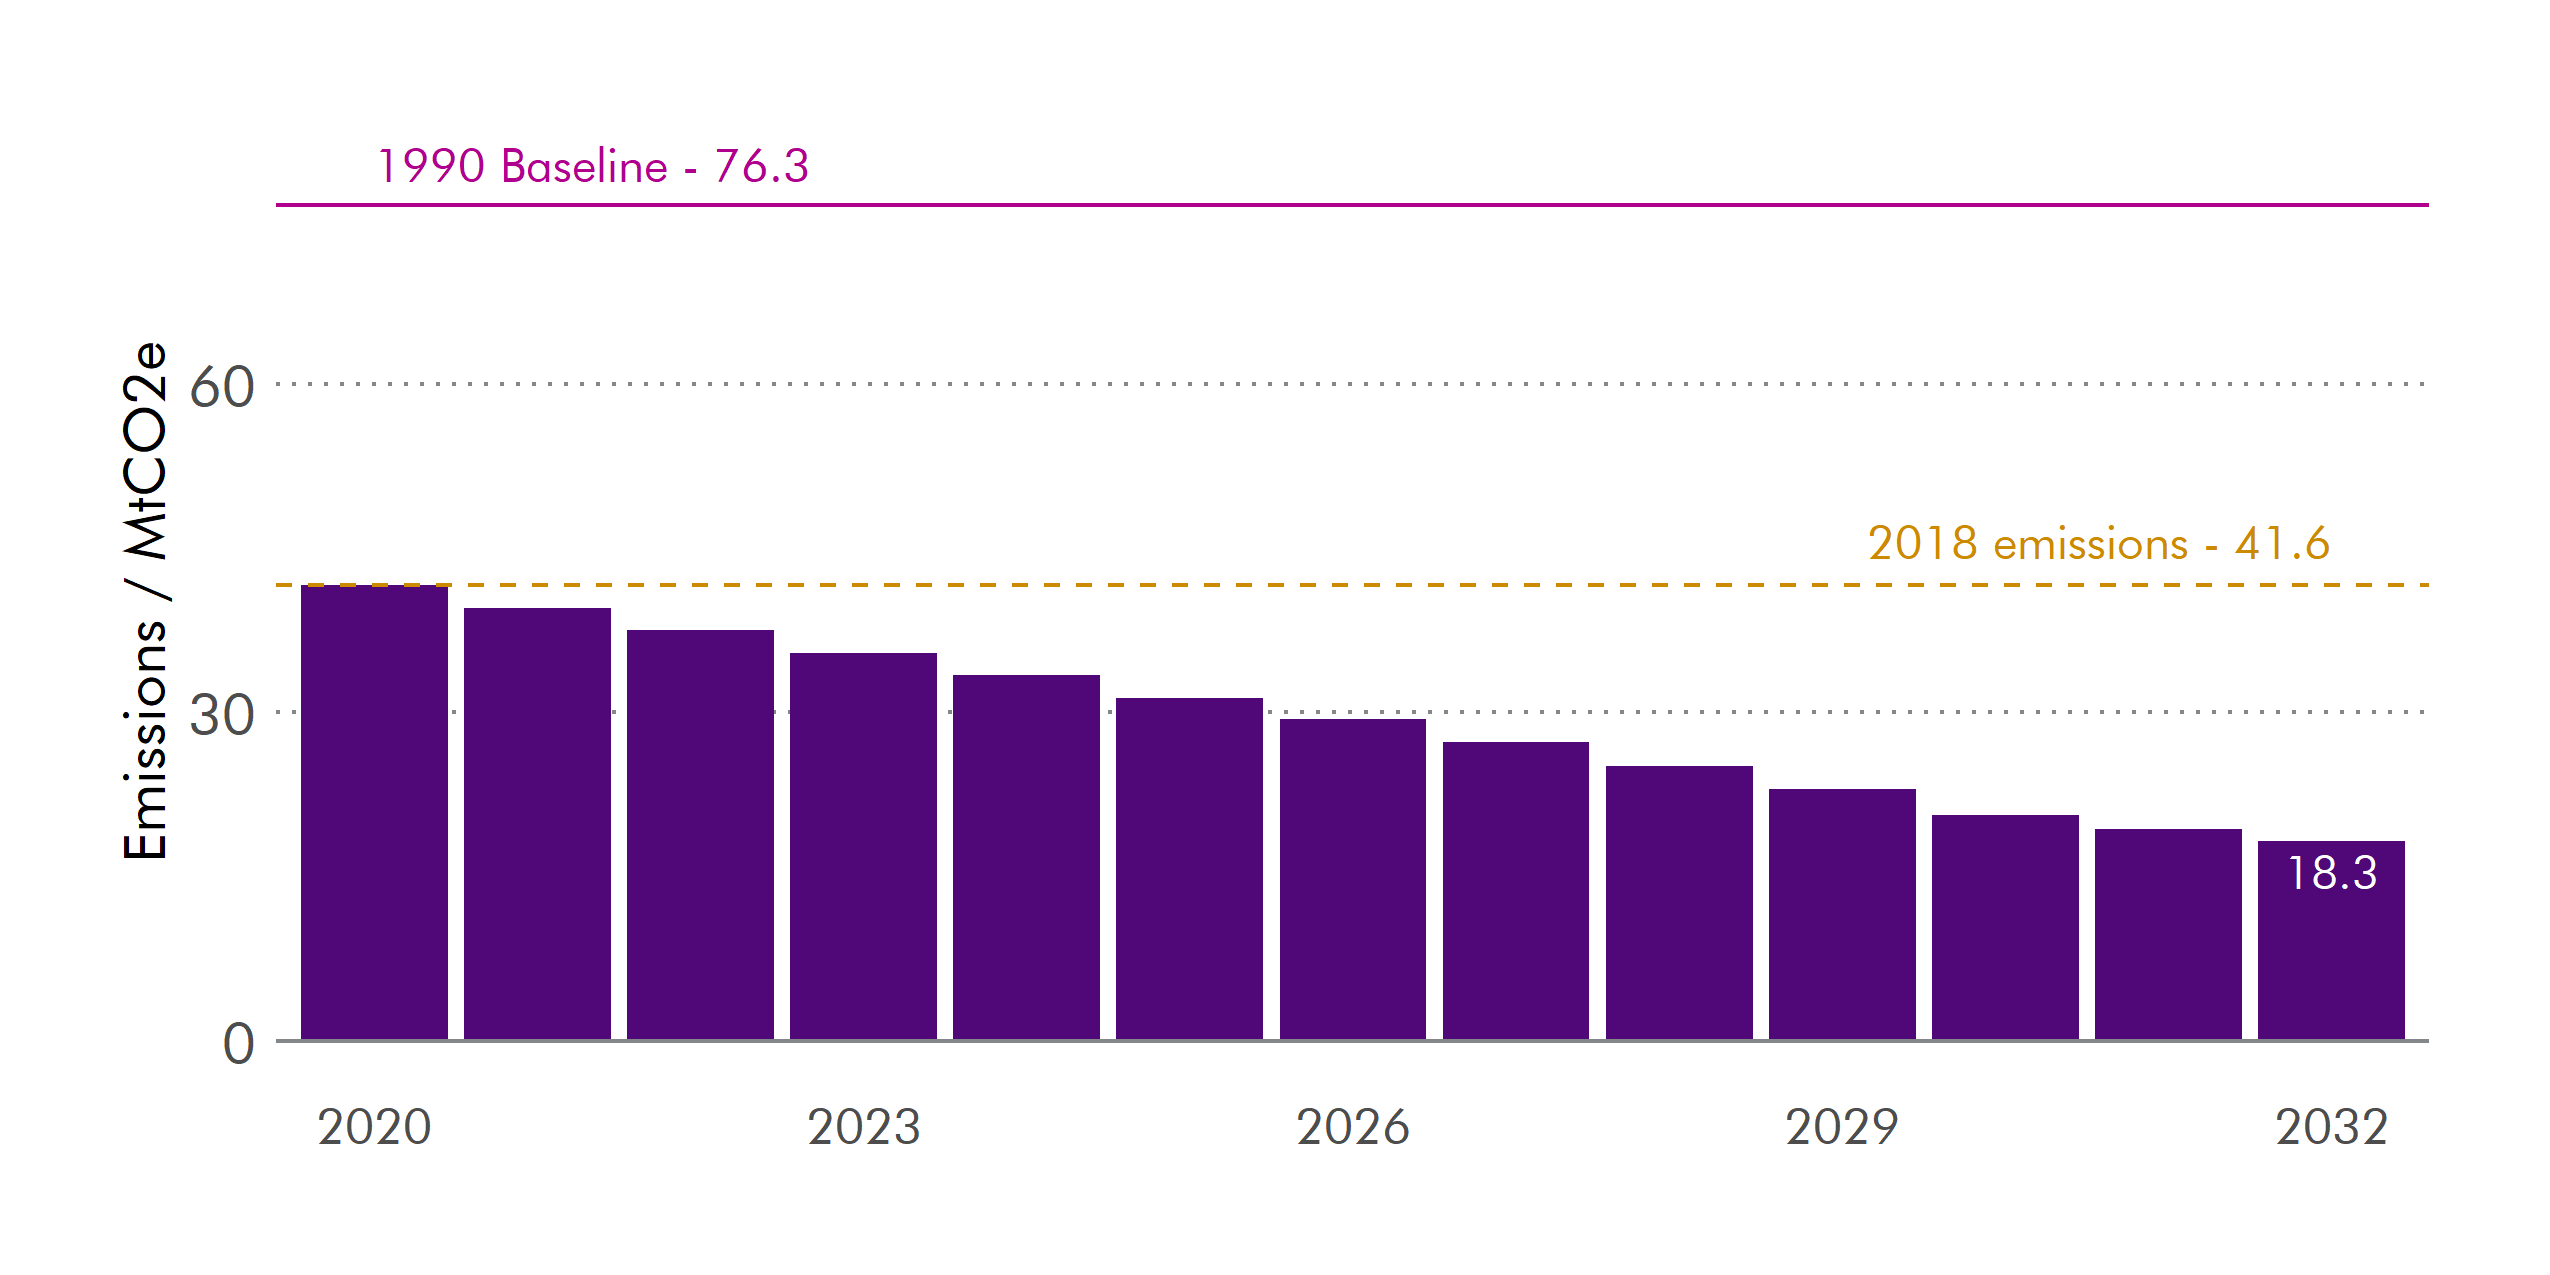 The Scottish Government anticipate that emissions will fall to 18.3 million tonnes of carbon dioxide equivalent by 2032.